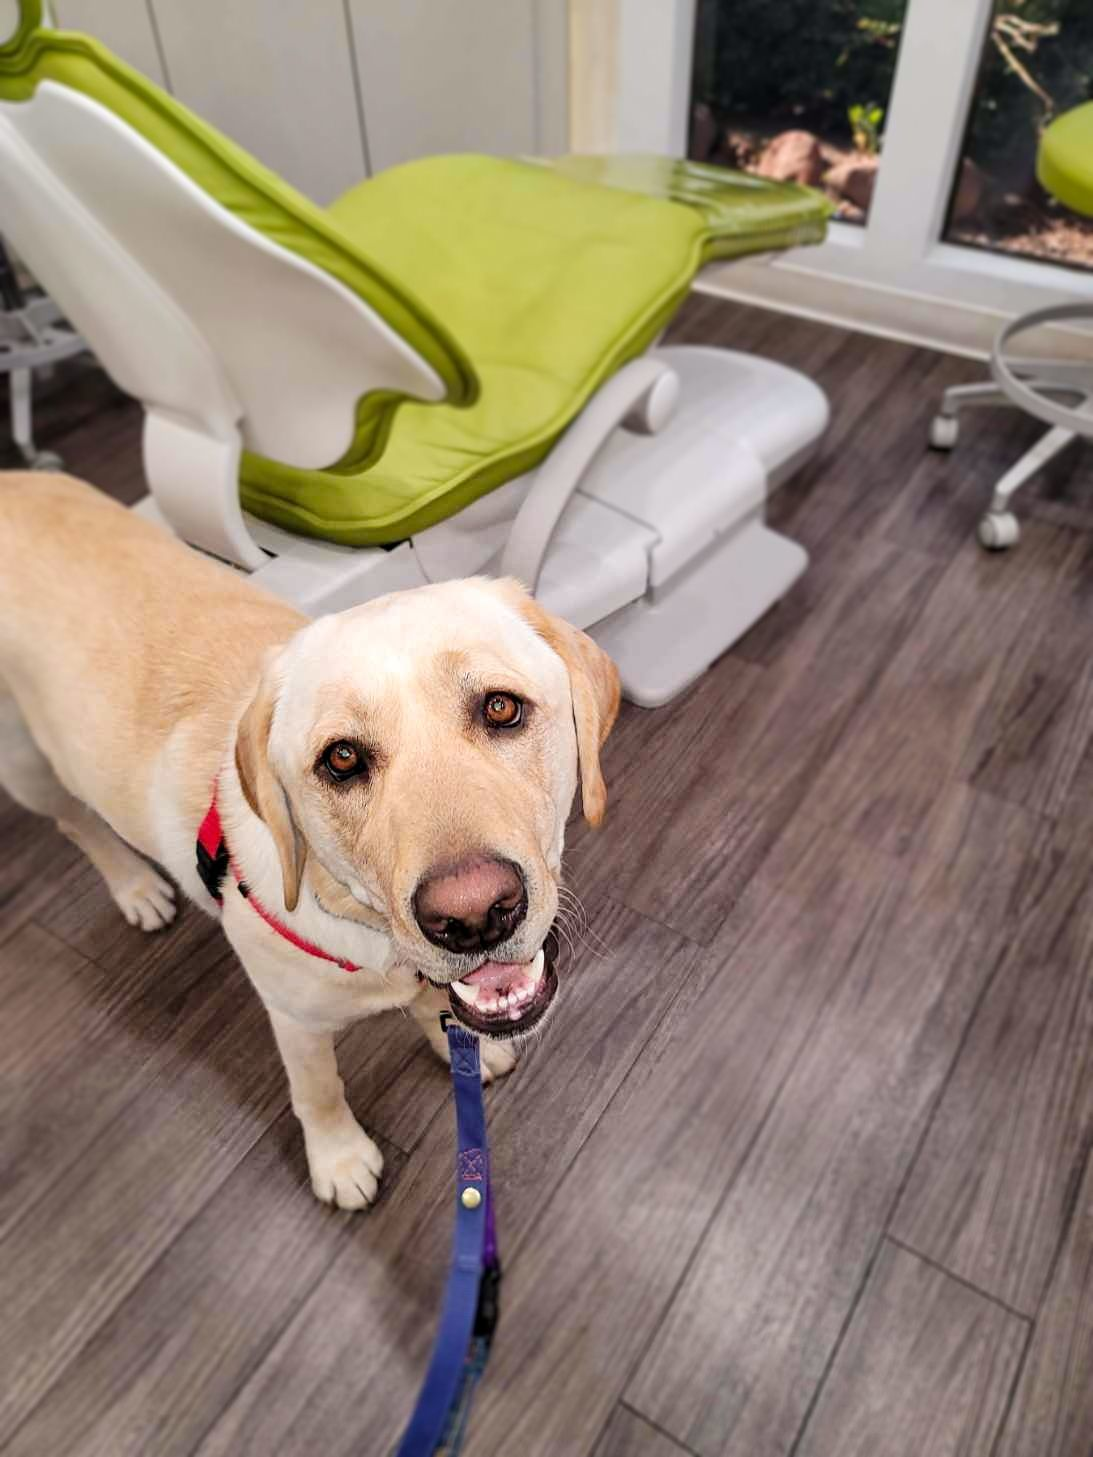 Bridging Education and Policy Gaps on Service Dogs in Healthcare Settings